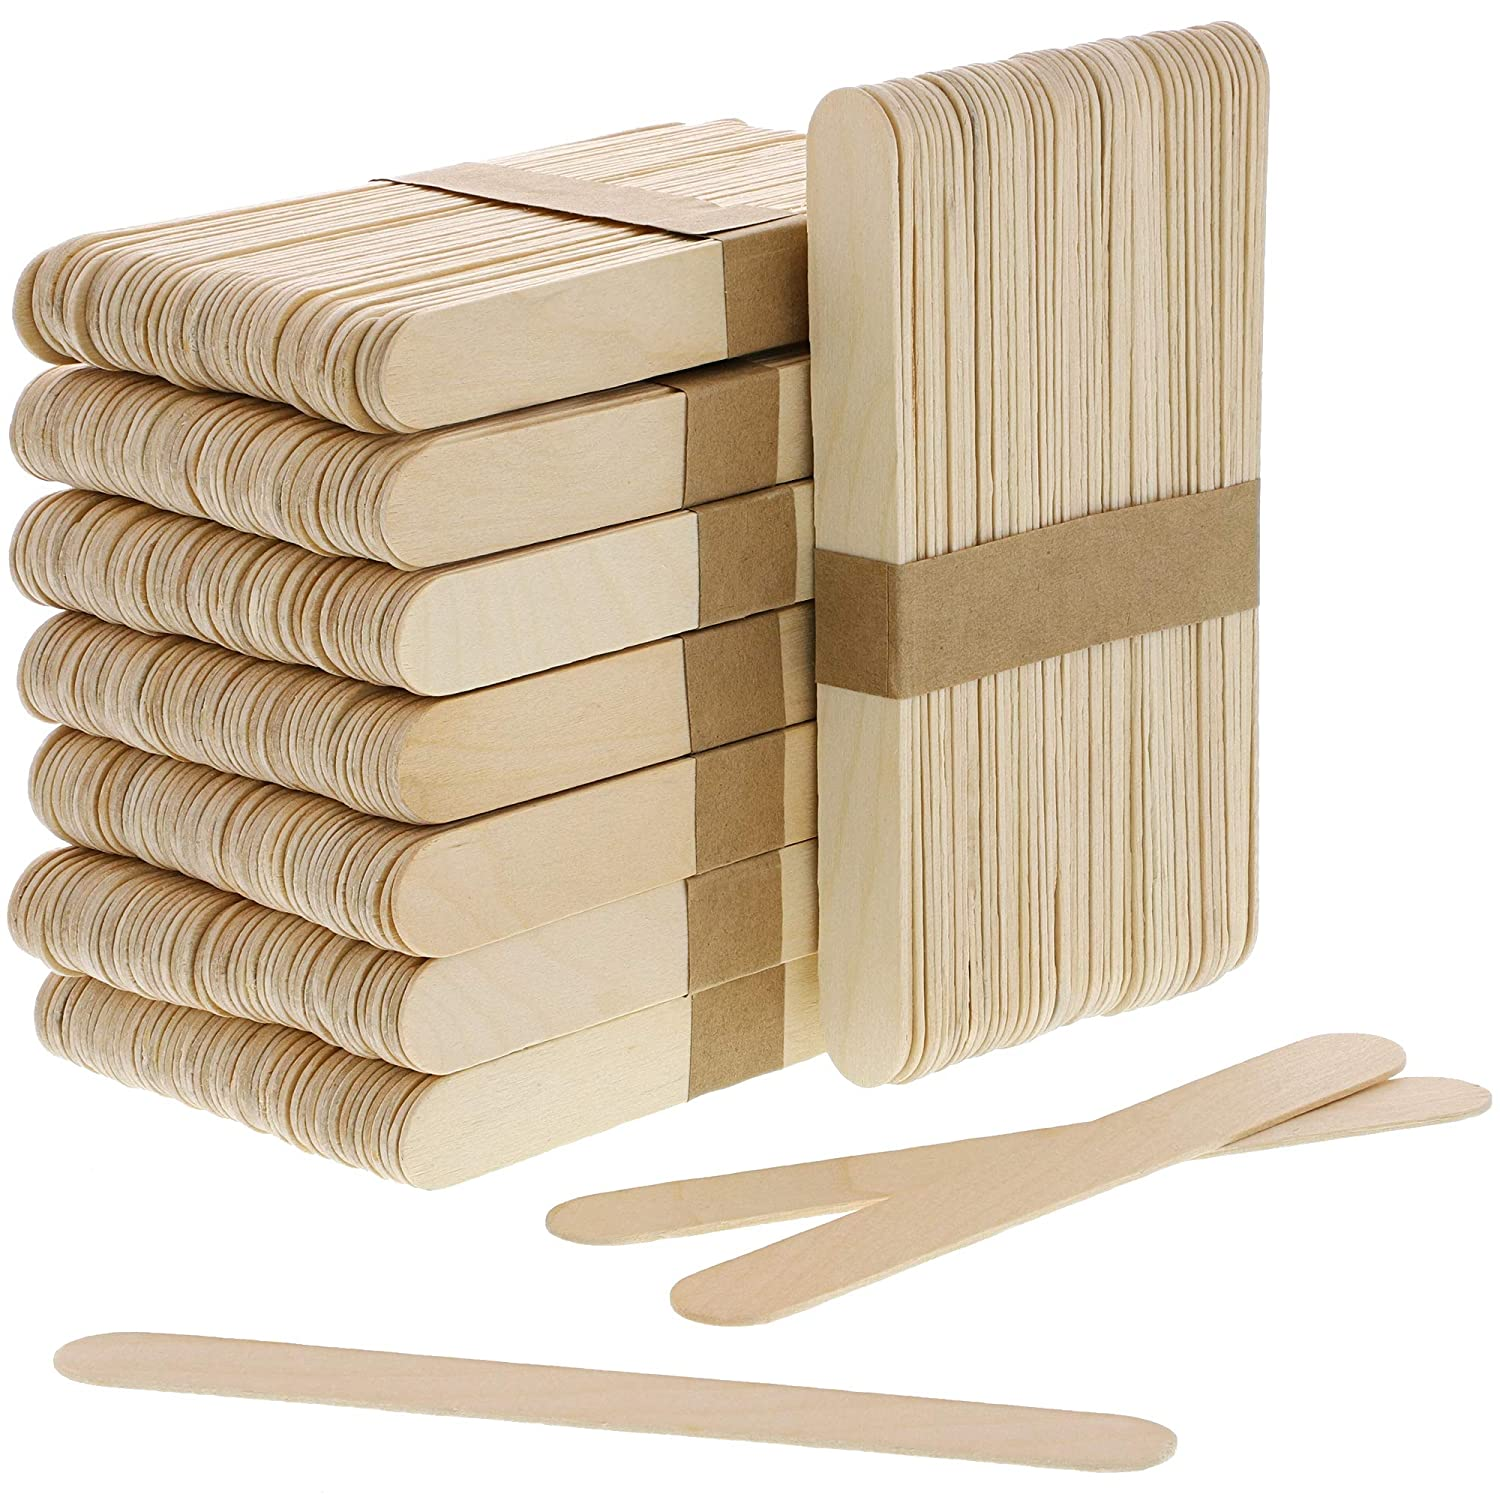 400 Count Juvale Large Wood Sticks for Wax Application or Crafts